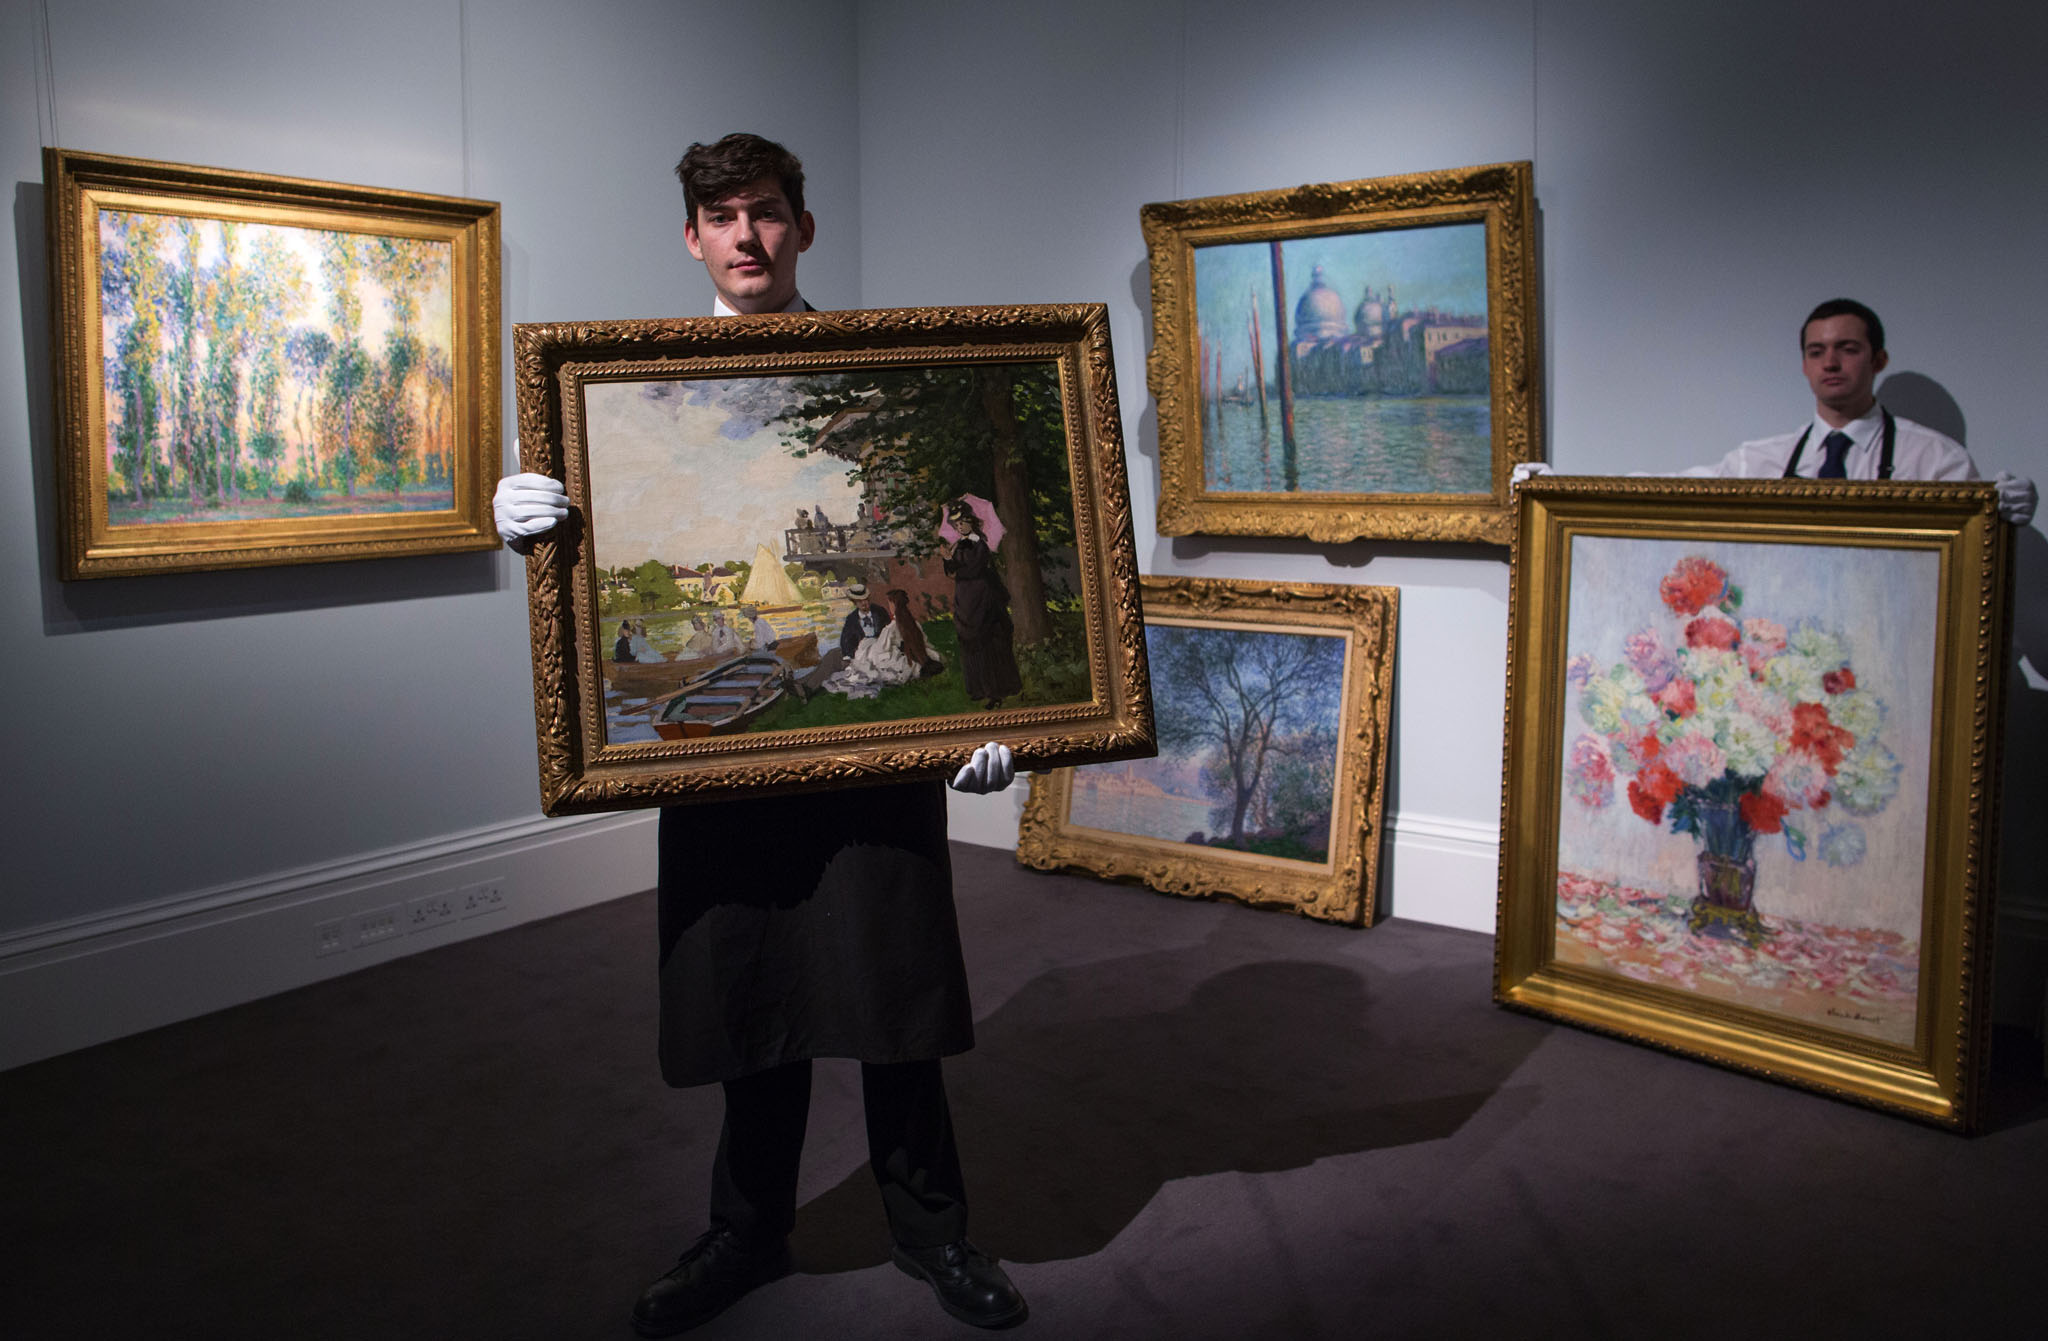 Gallery technicians at Sotheby's Bond Street get ready to exhibit five Monet's with a value in excess of  70 million which are coming up for auction.